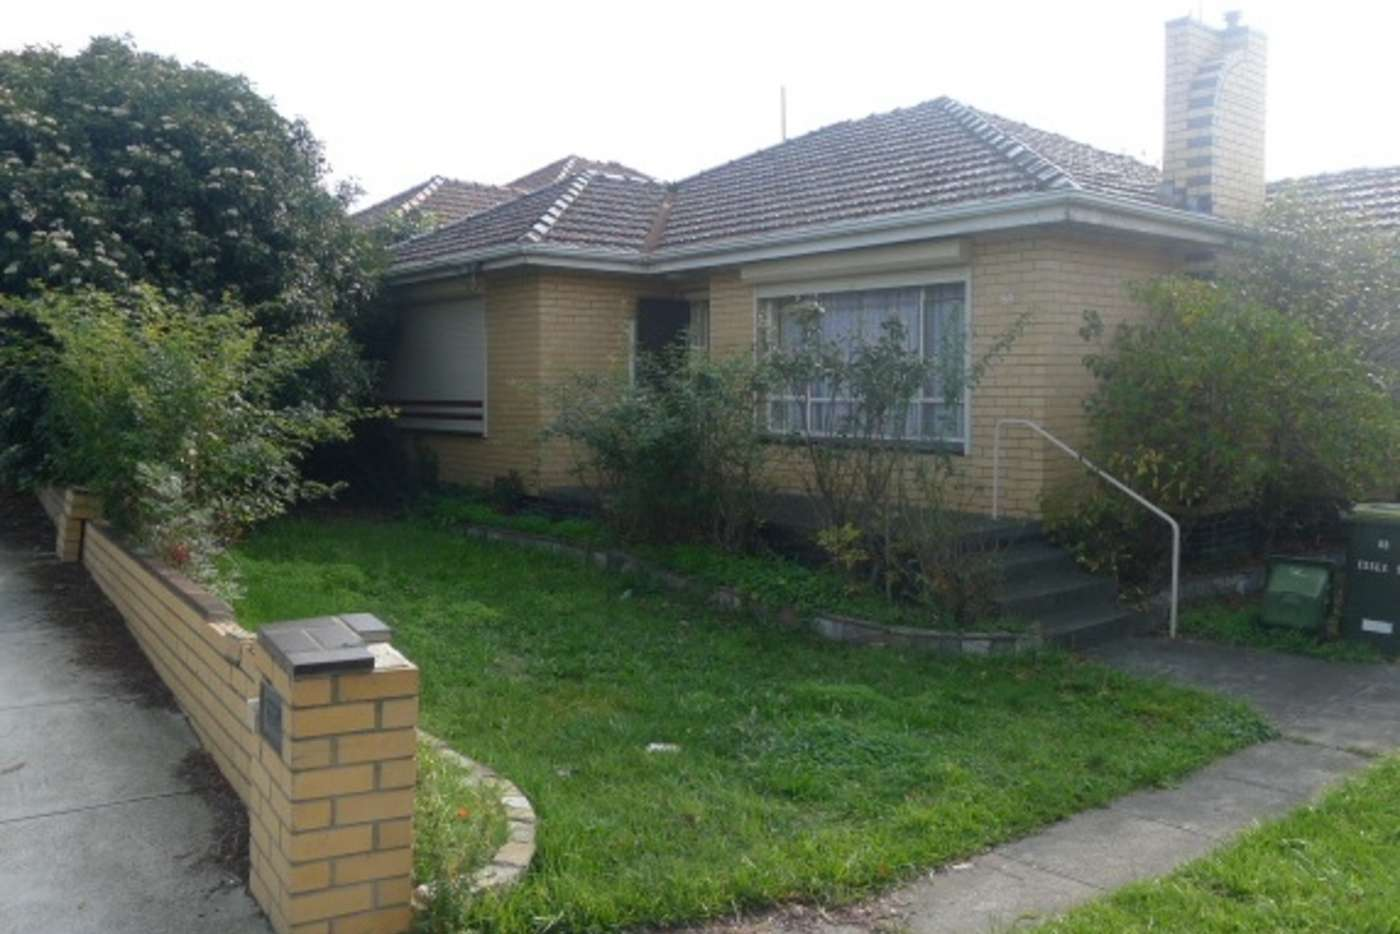 Main view of Homely house listing, 88 Essex Street, West Footscray VIC 3012